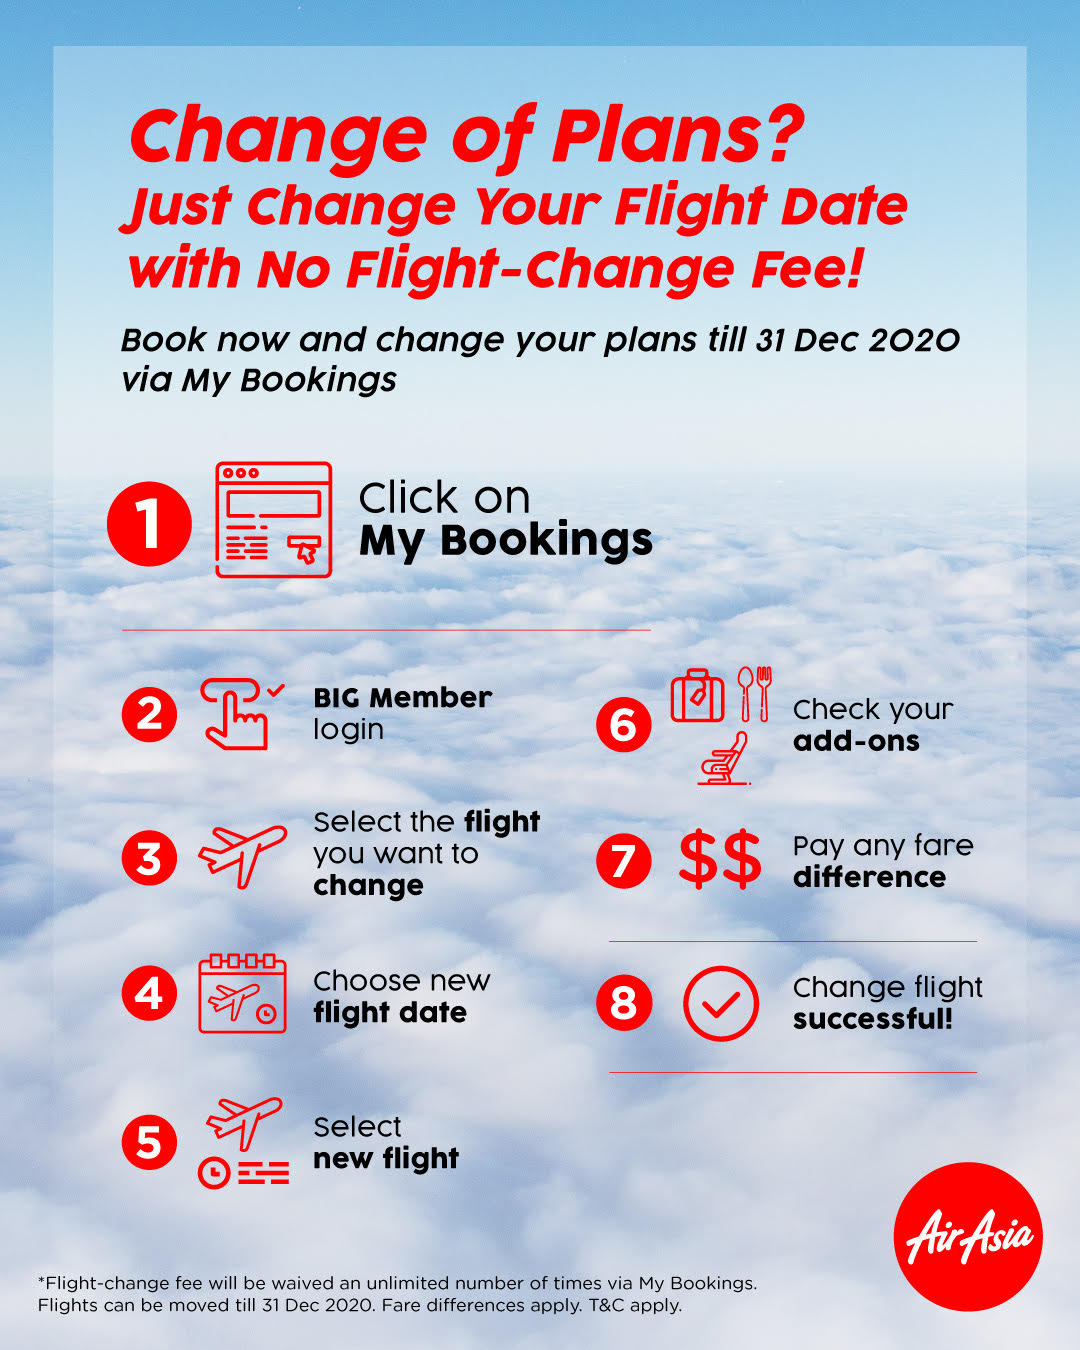 Enhanced flexibility for AirAsia guests travelling up to 31 Dec 2020 with flight change fee waiver